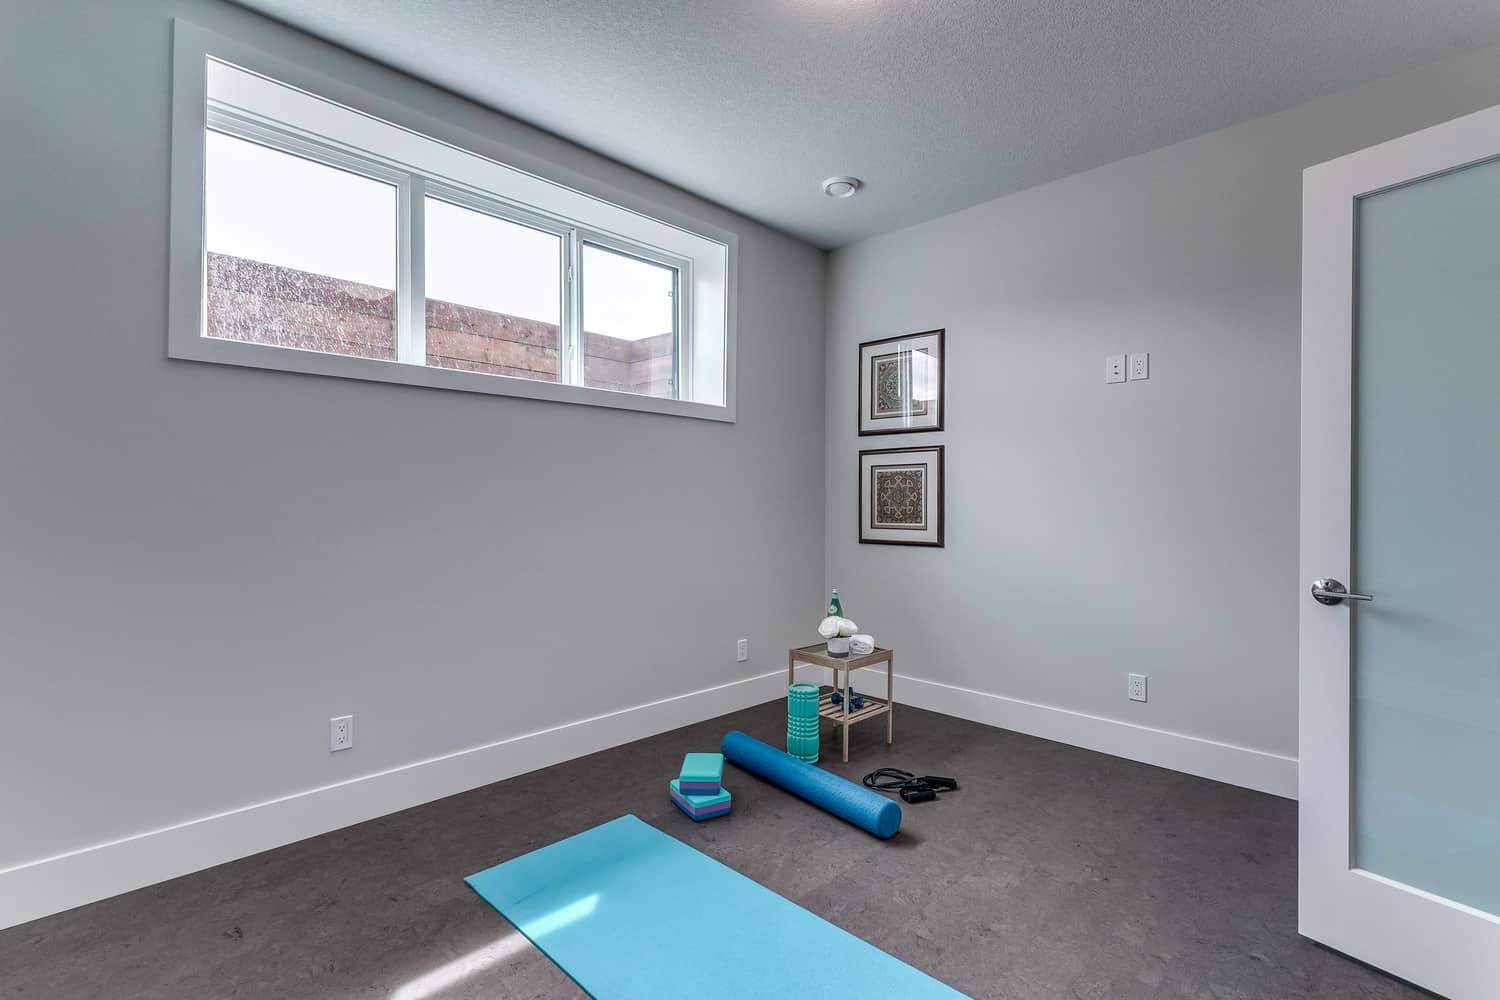 Watermark at Bearspaw basement workout room residential design